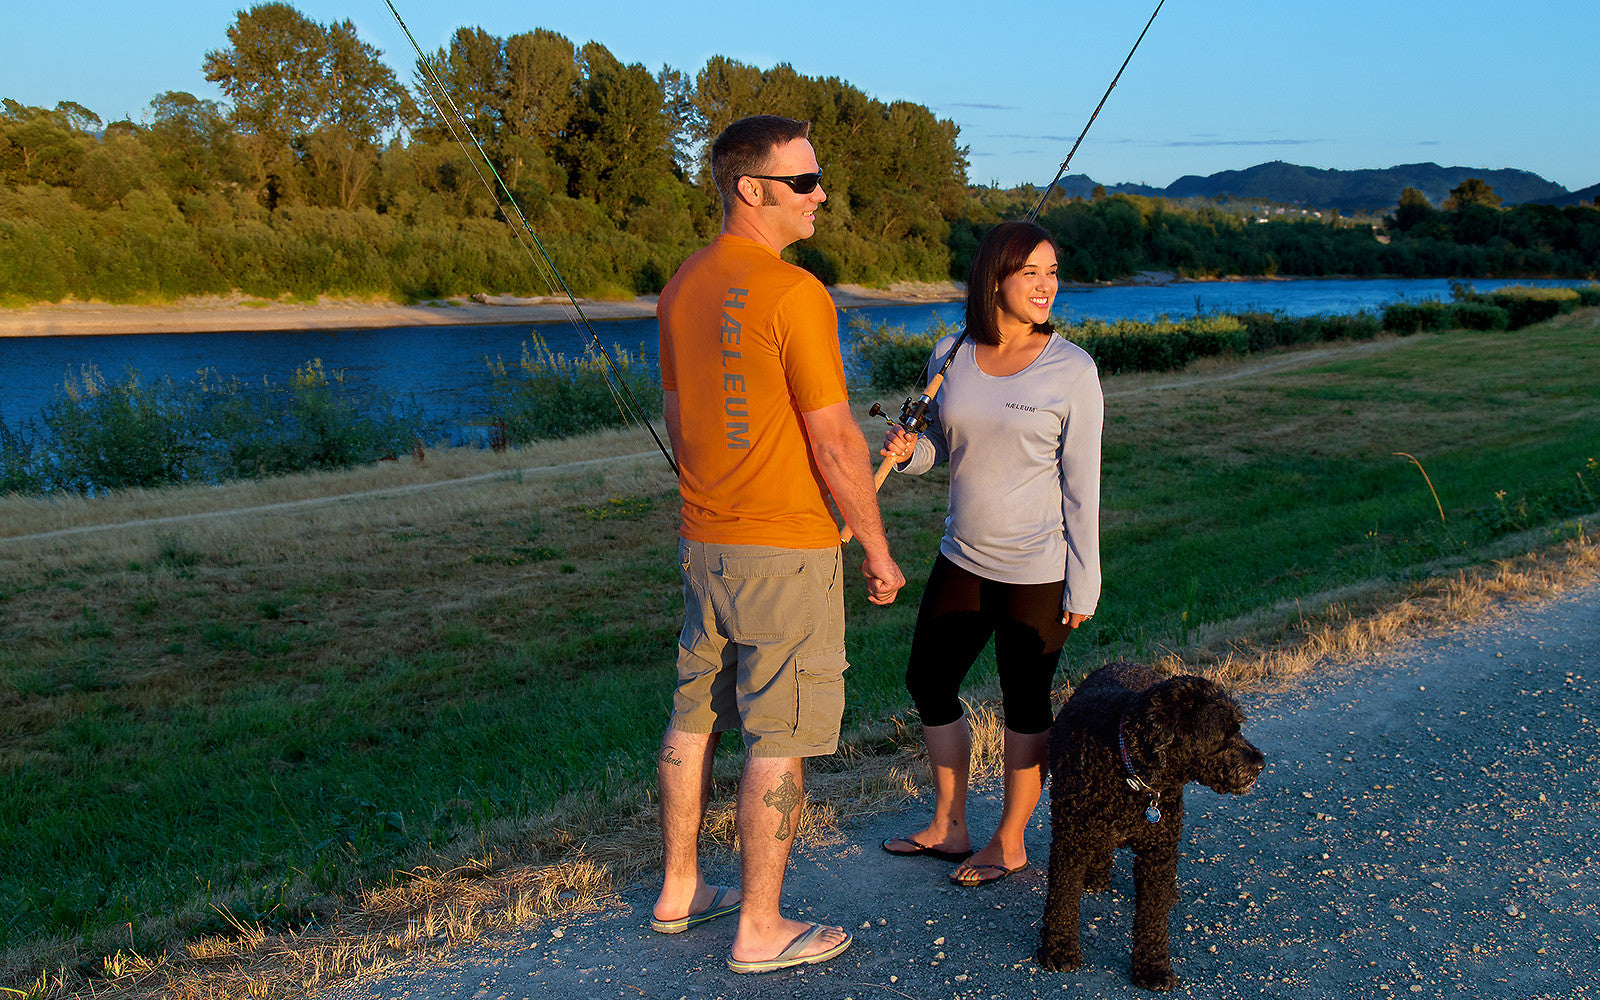 Man and woman wearing haeleum insect repellent clothing to go fishing at dusk